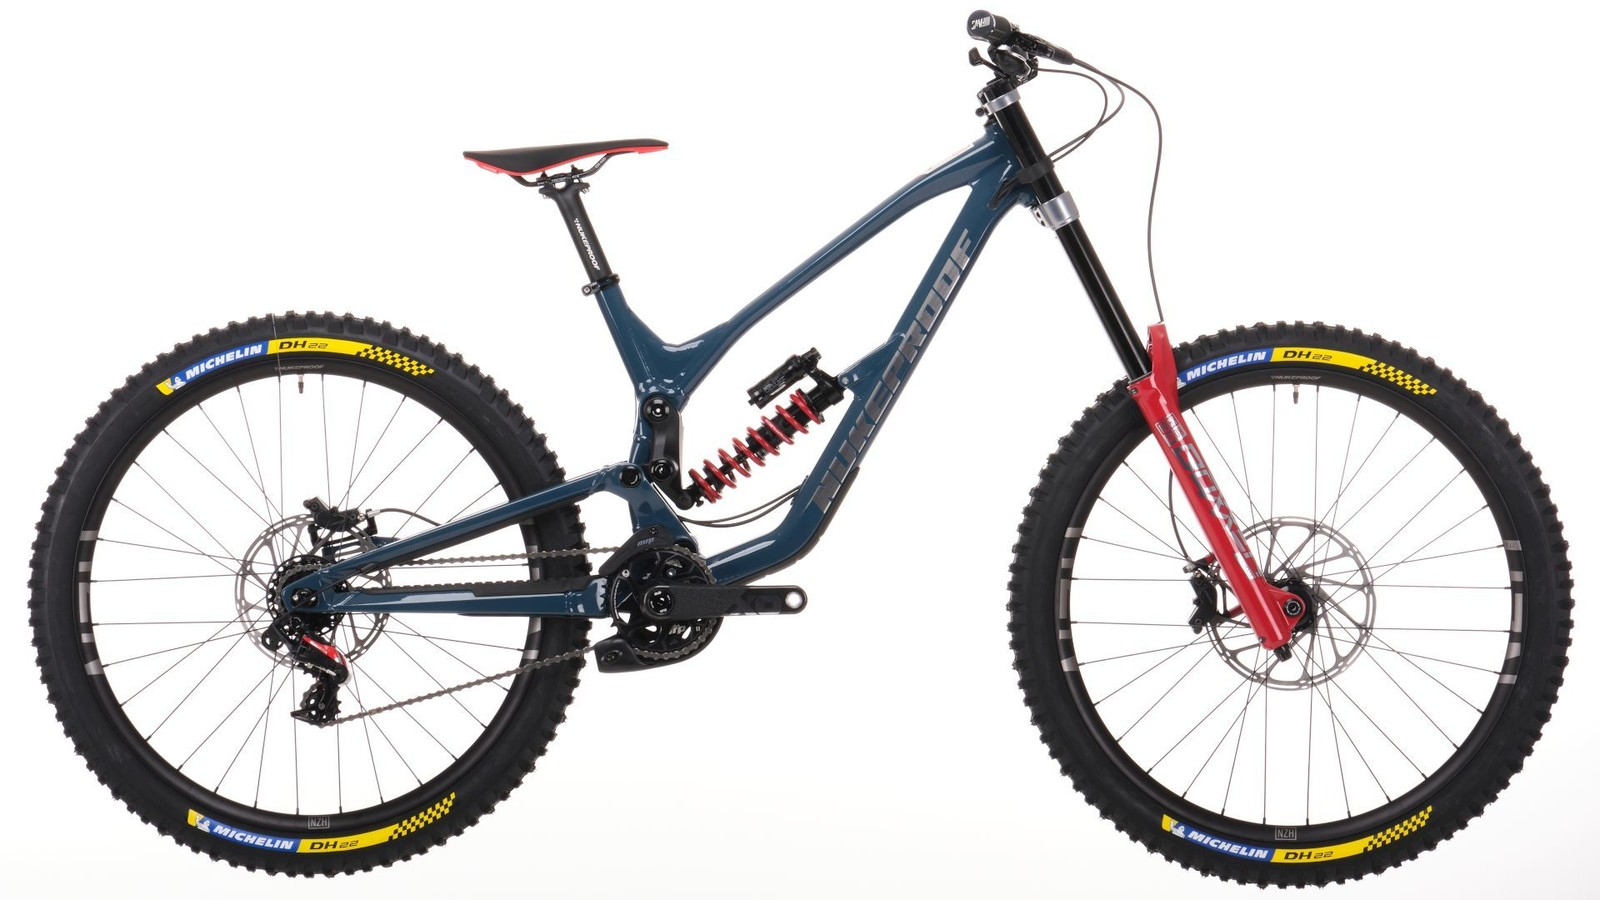 Nukeproof Introduces 2021 Dissent - 27, 29, and Mullet Mode Available